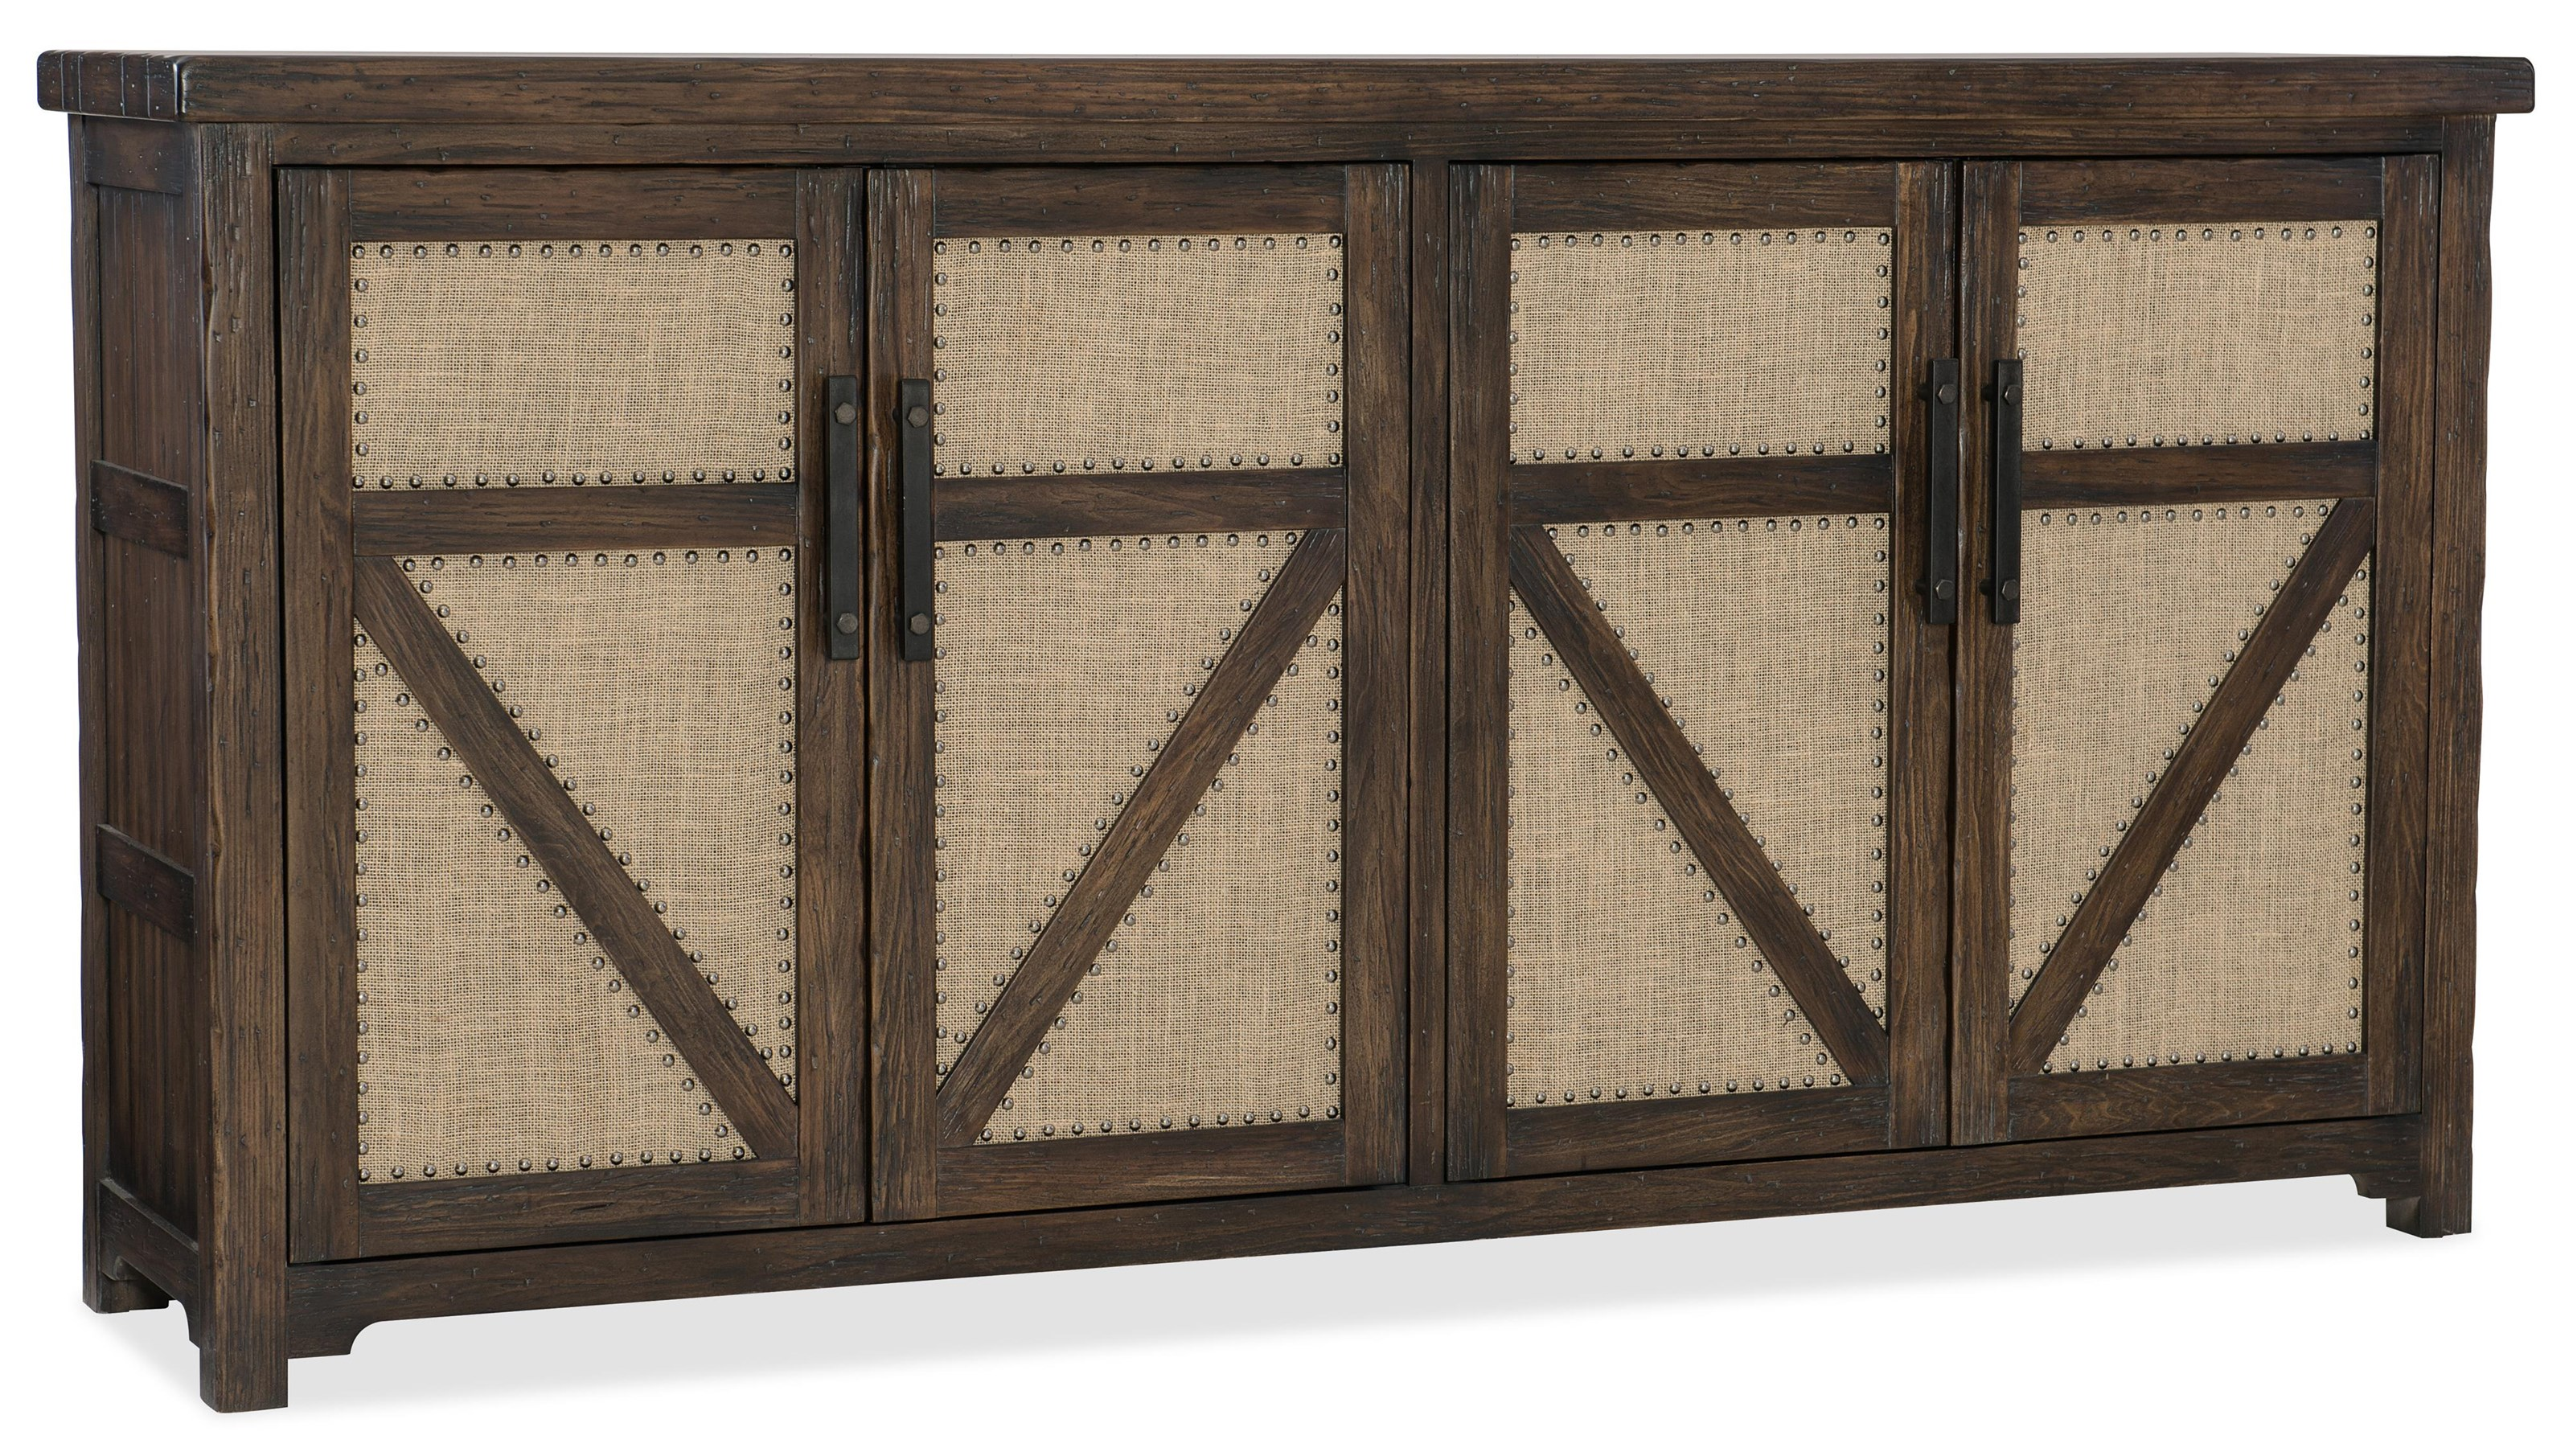 Hooker Furniture 1618-American Life Buffet - Item Number: 1618-75900-DKW